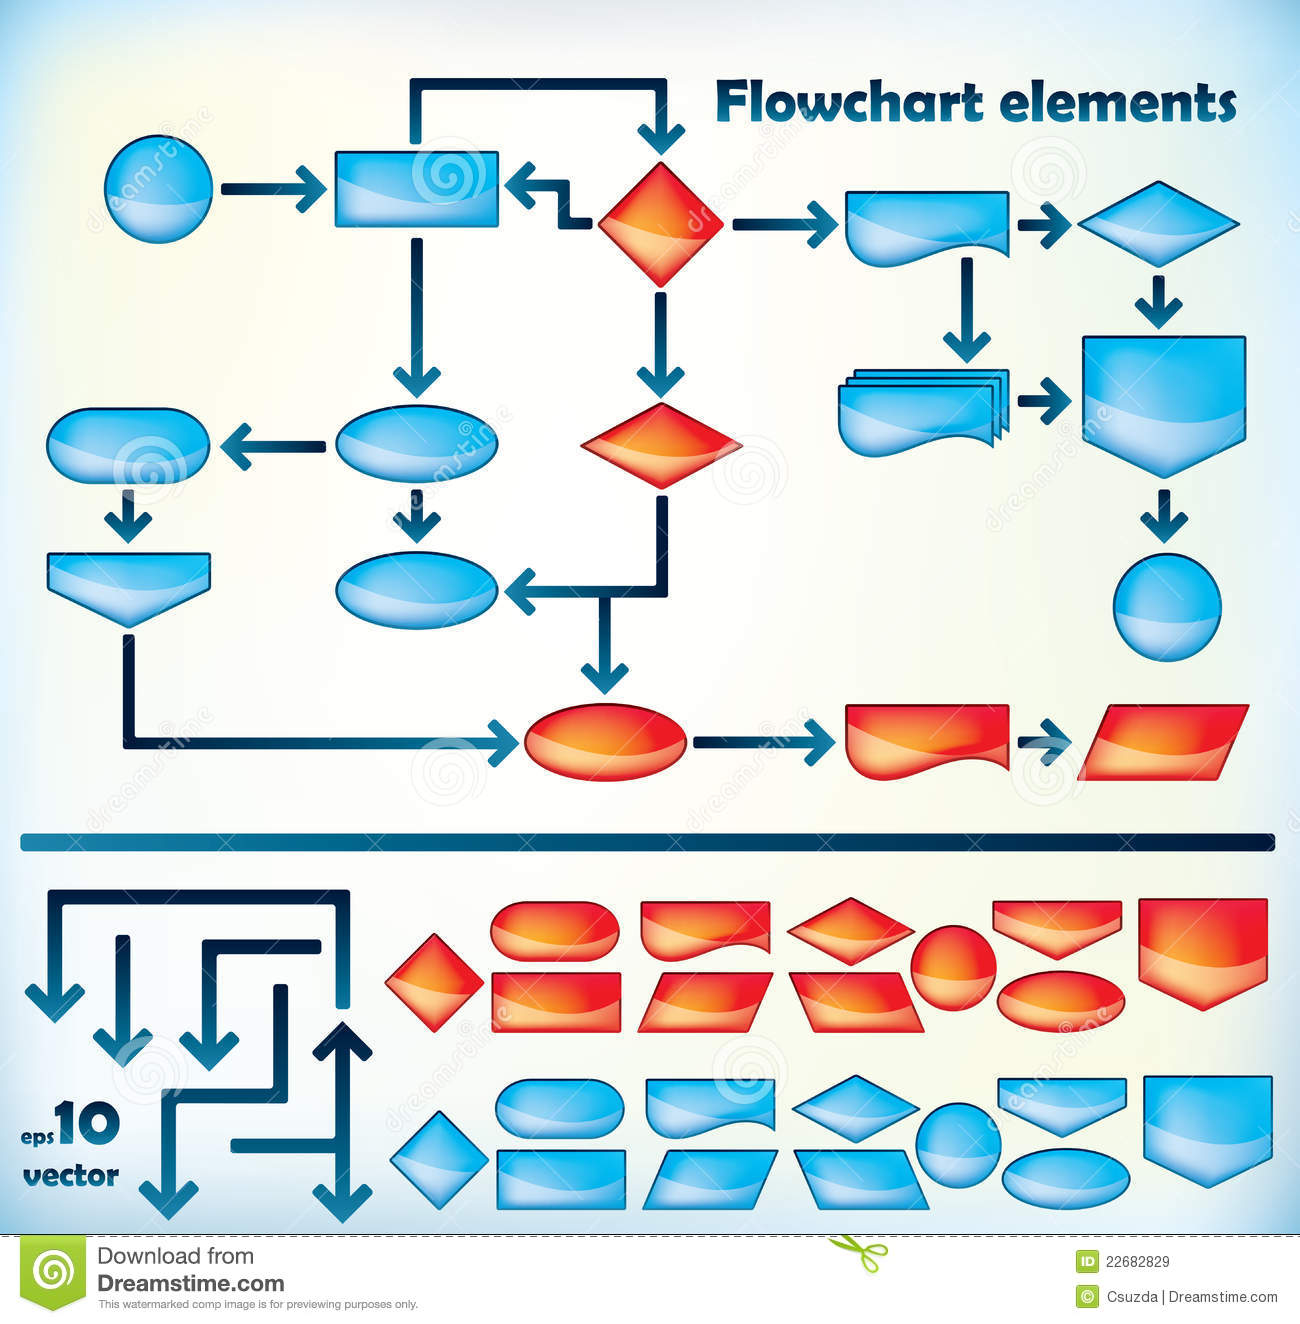 Flowchart elements